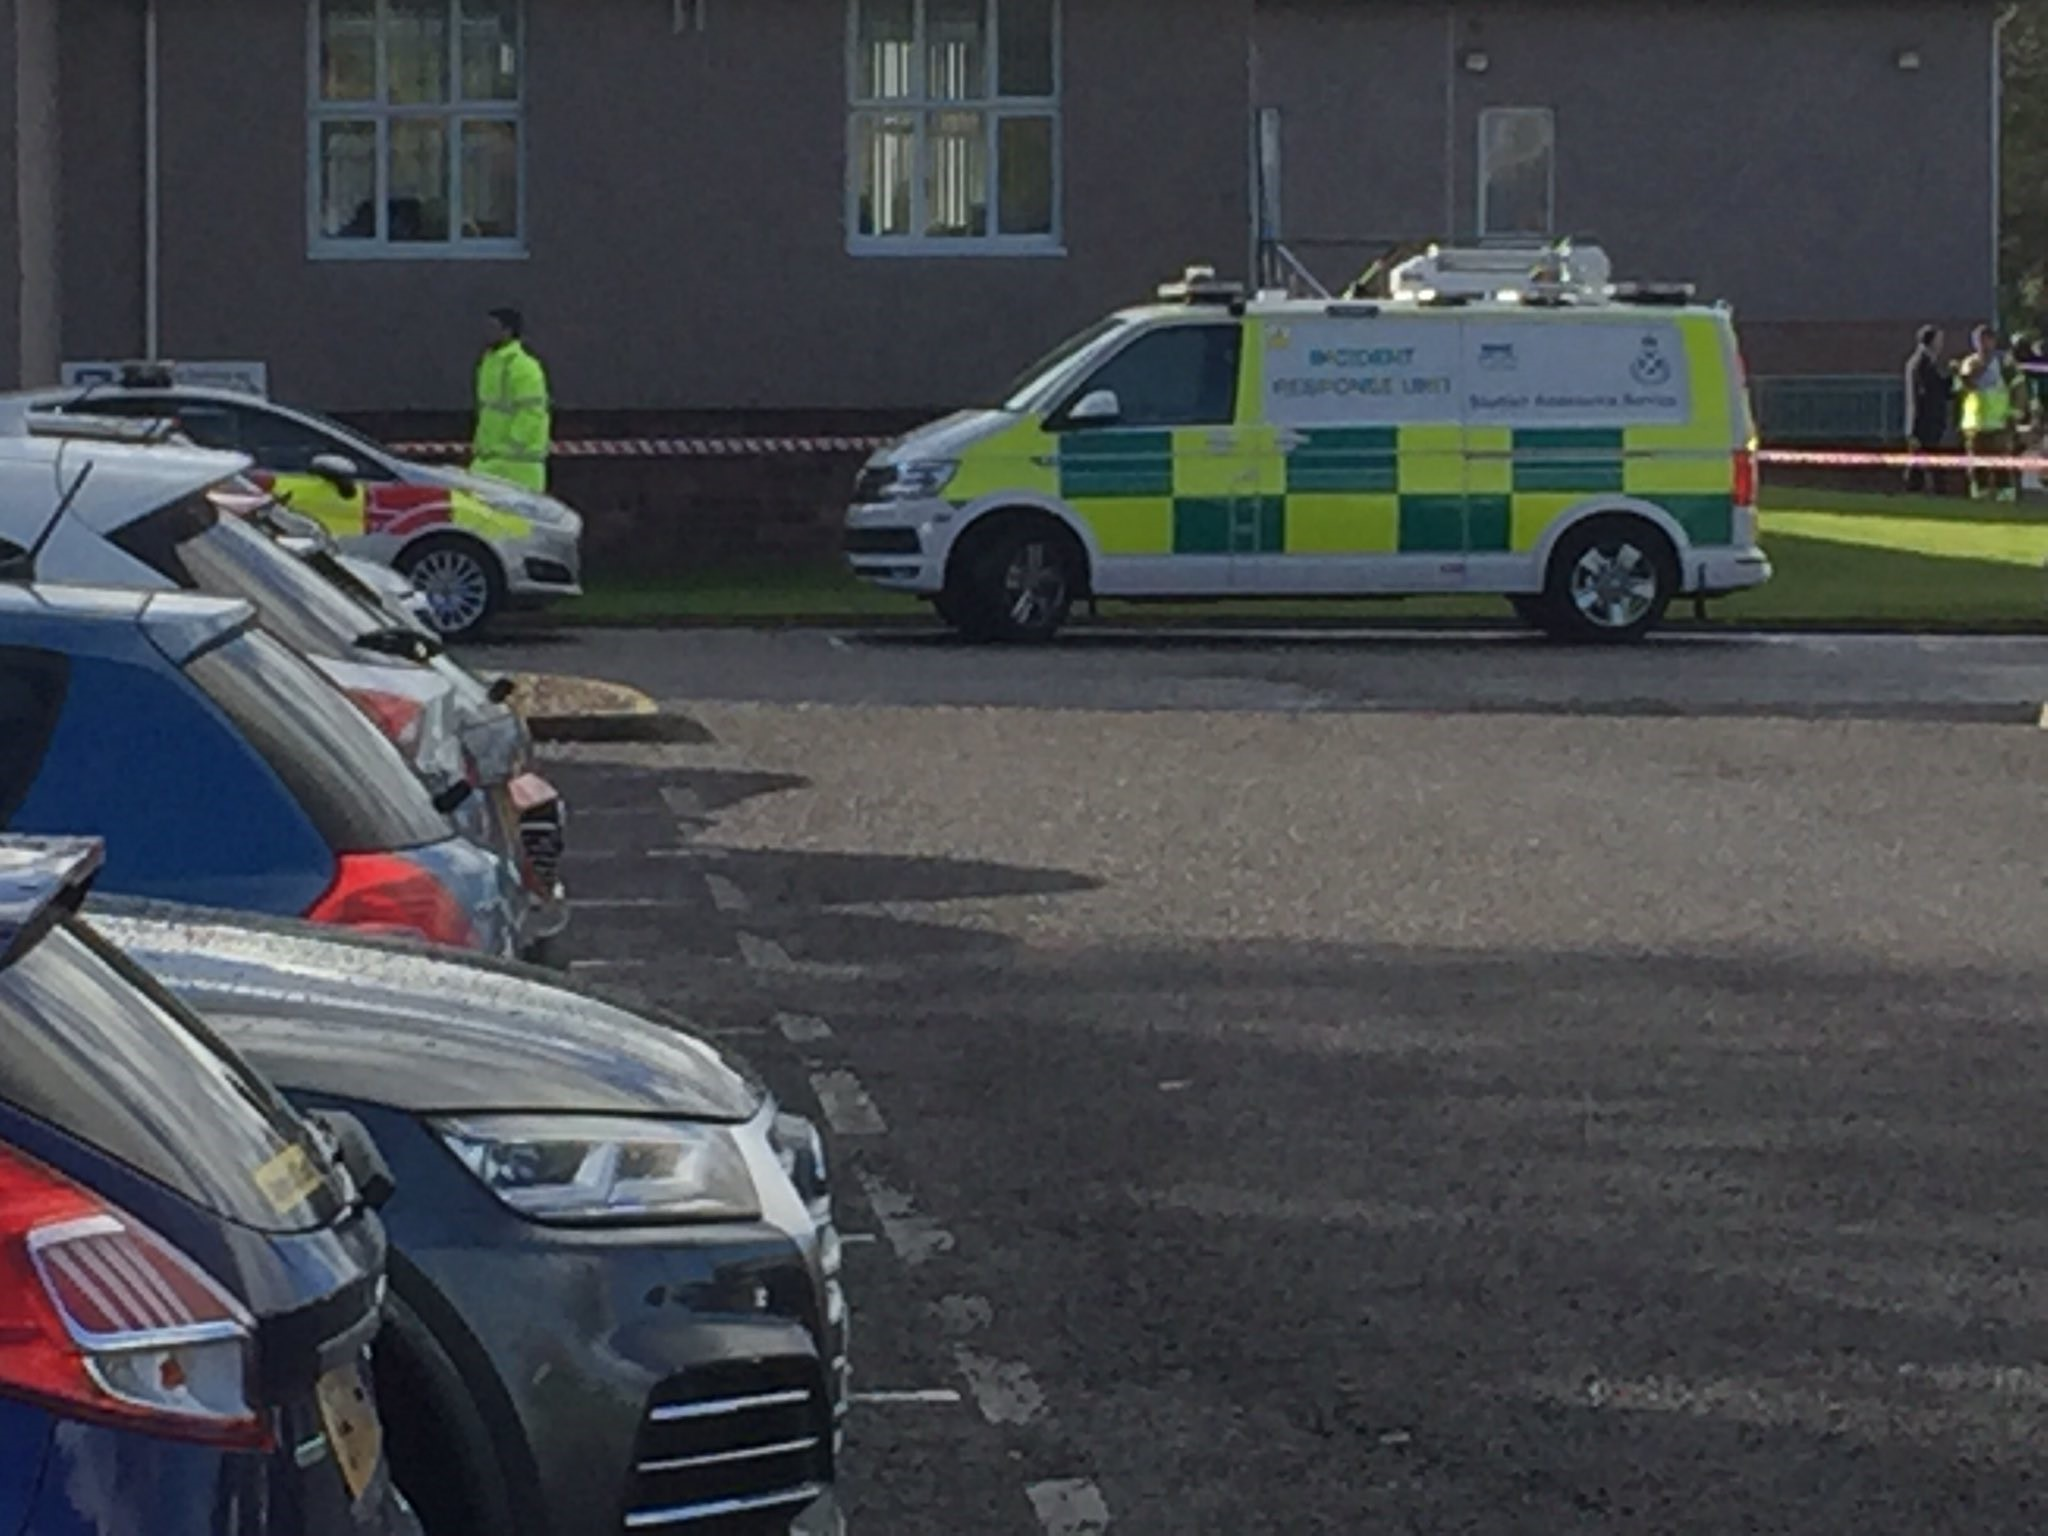 Emergency services at Stracathro